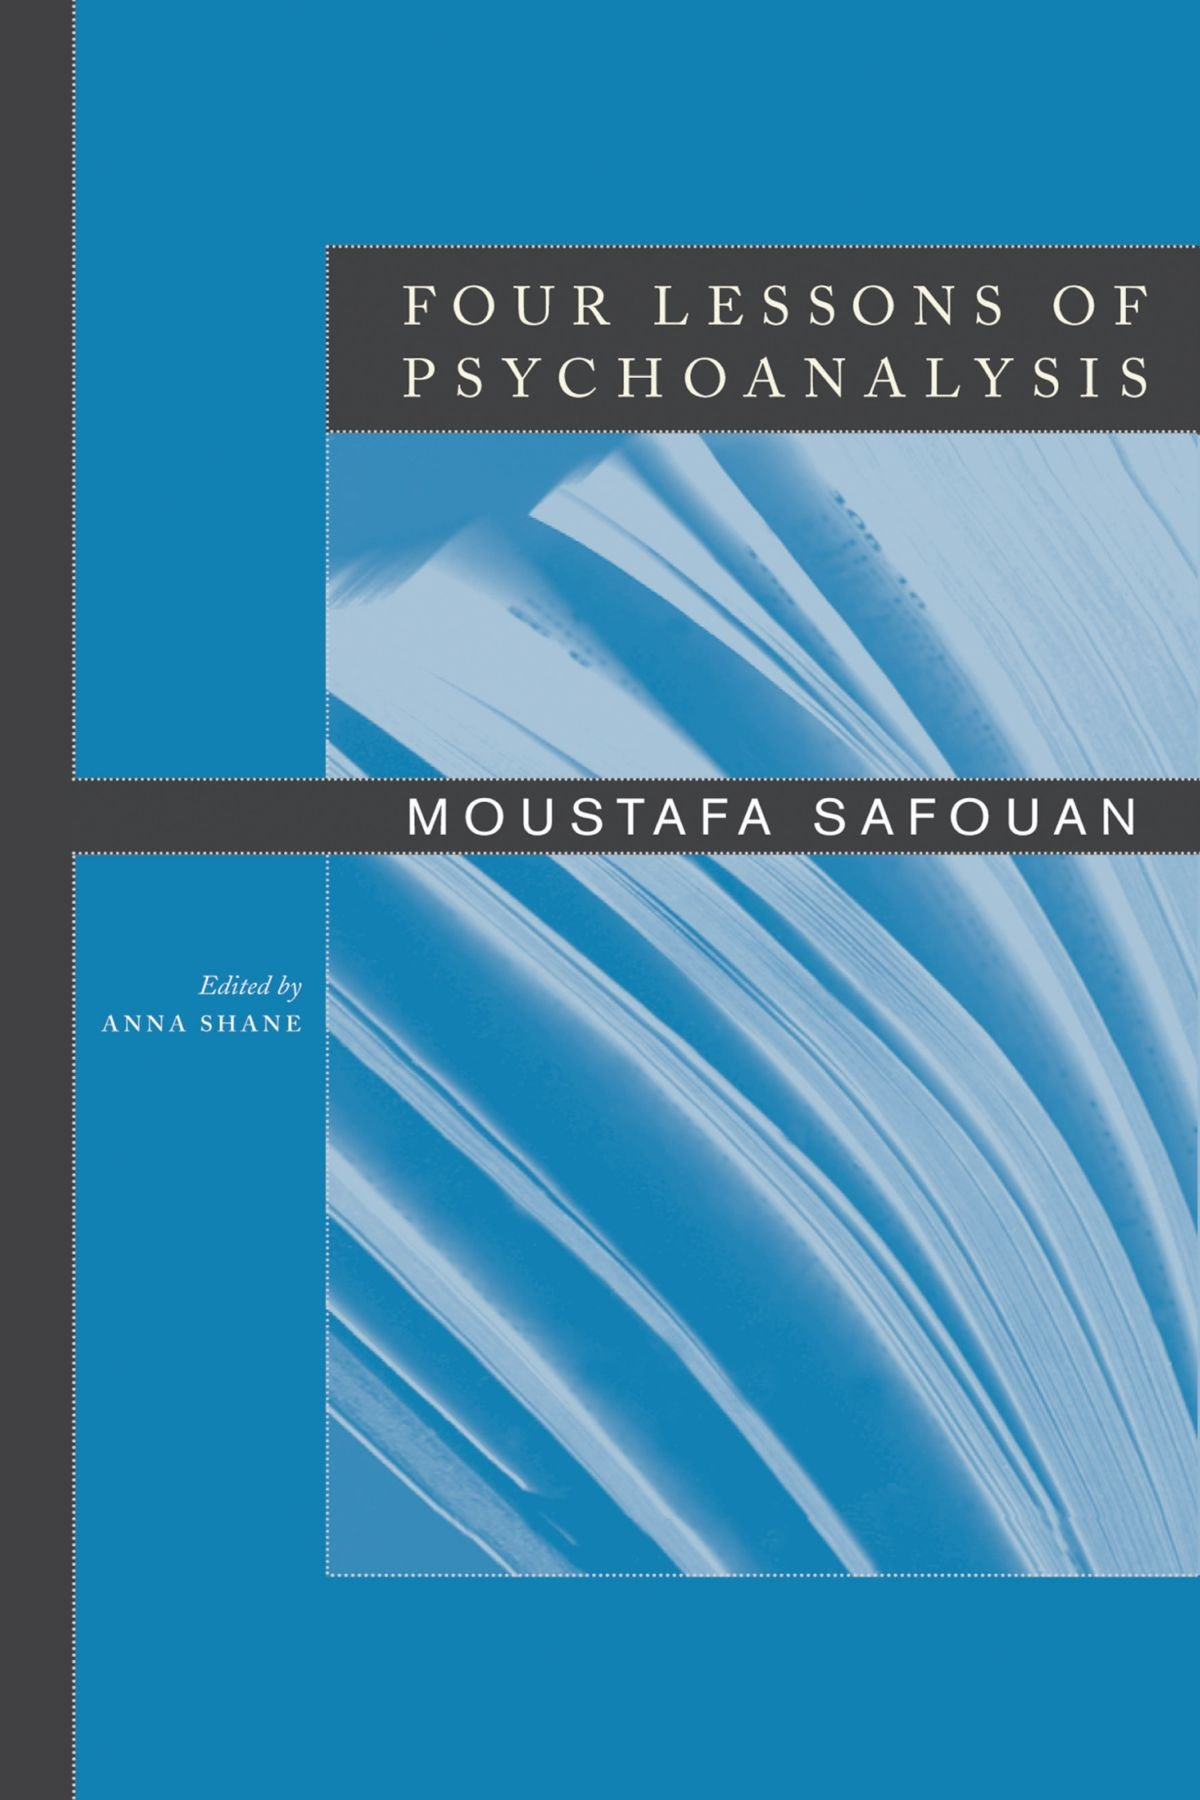 Download Four Lessons of Psychoanalysis pdf